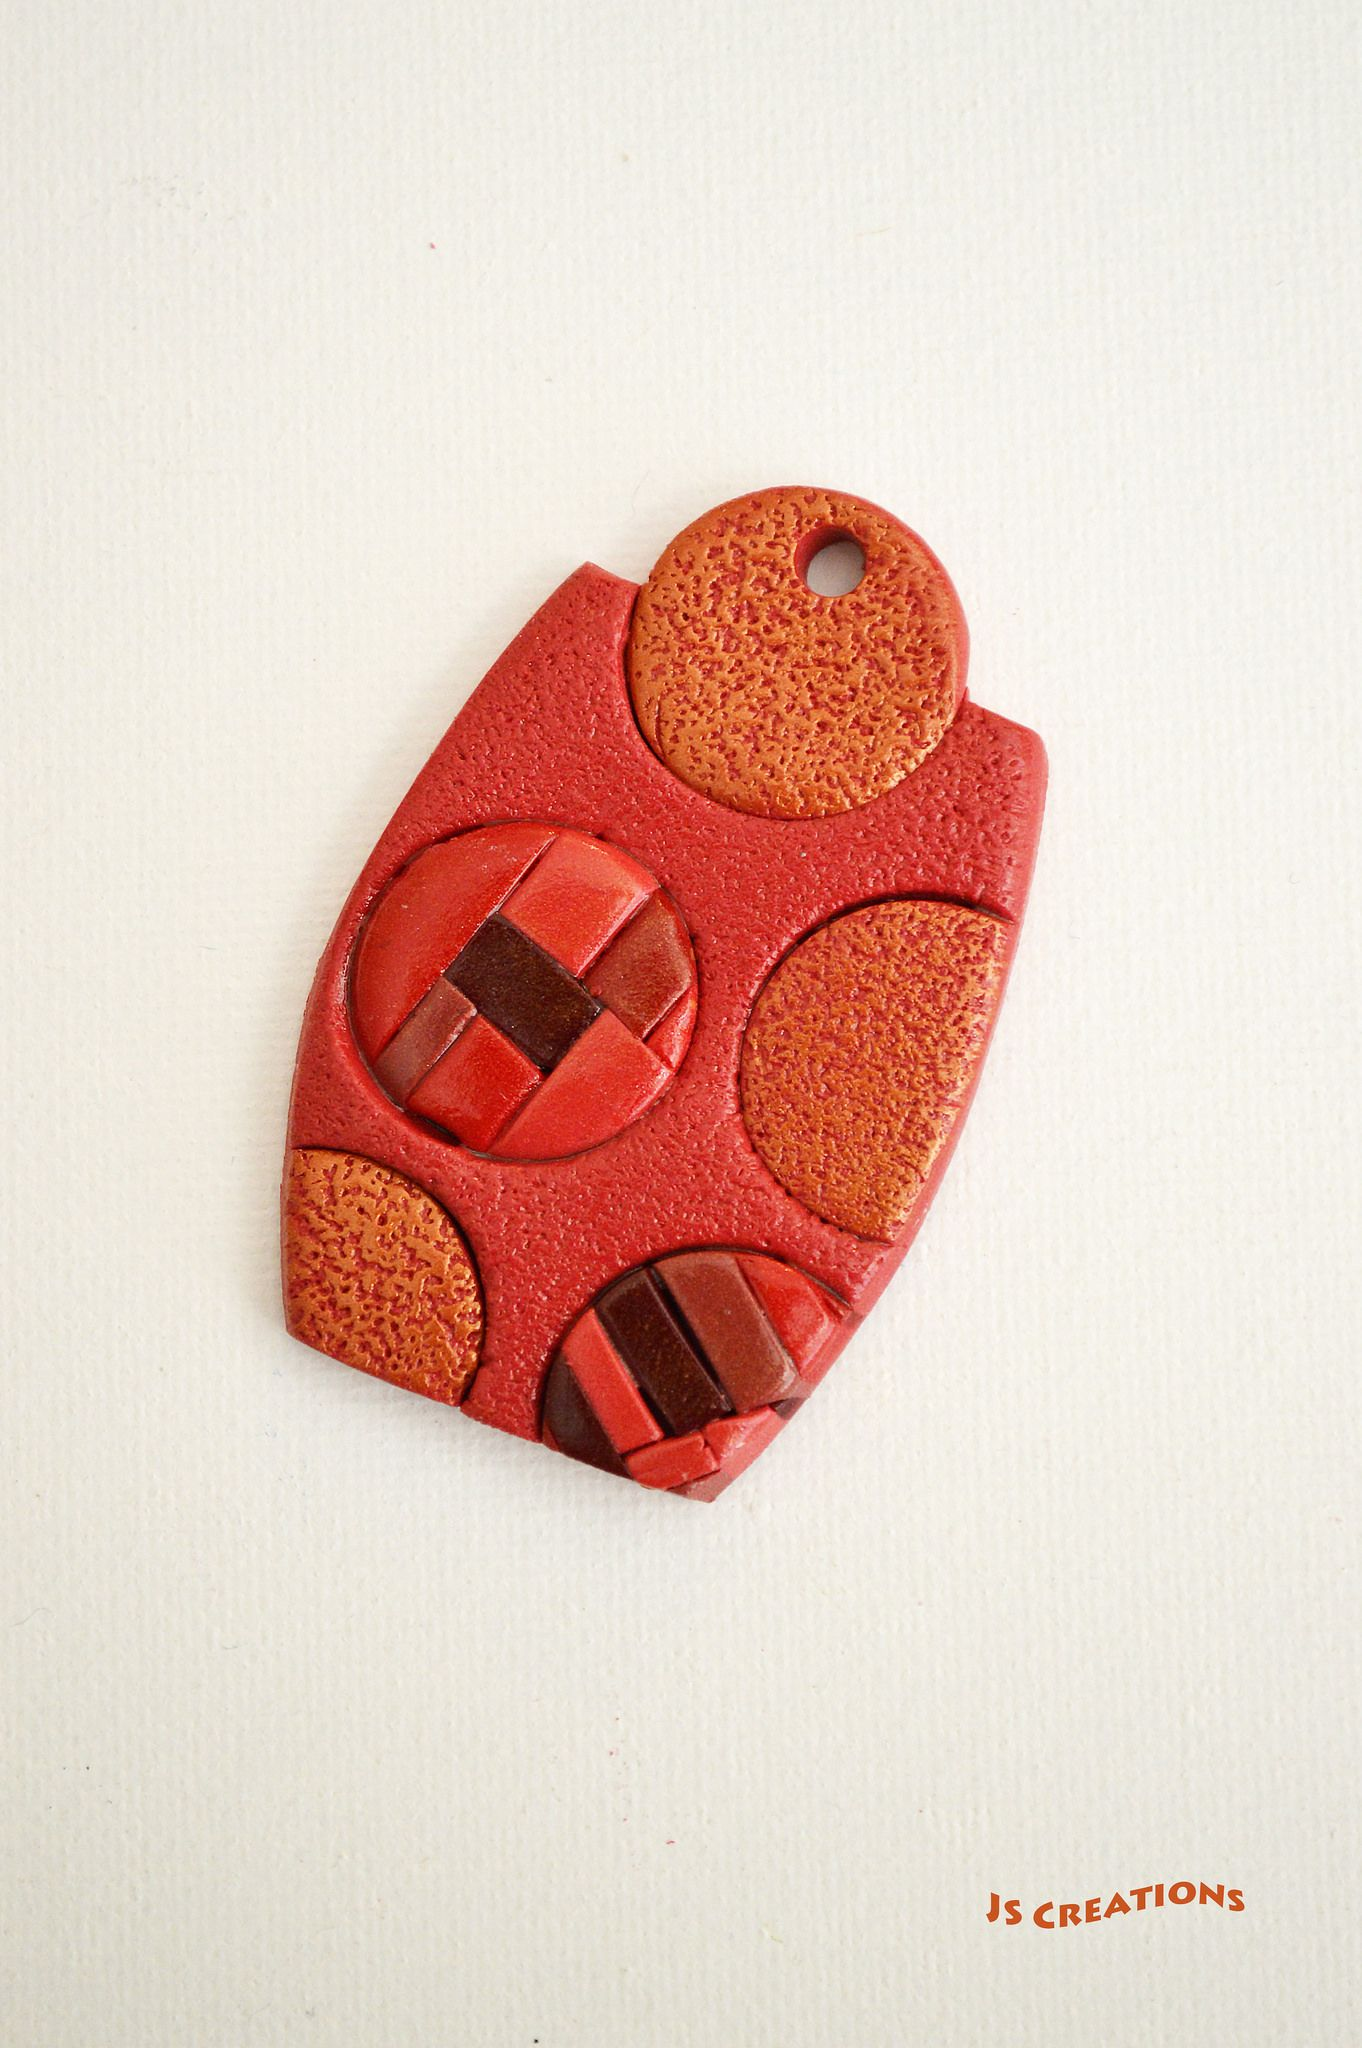 JS Creations polymer clay pendant